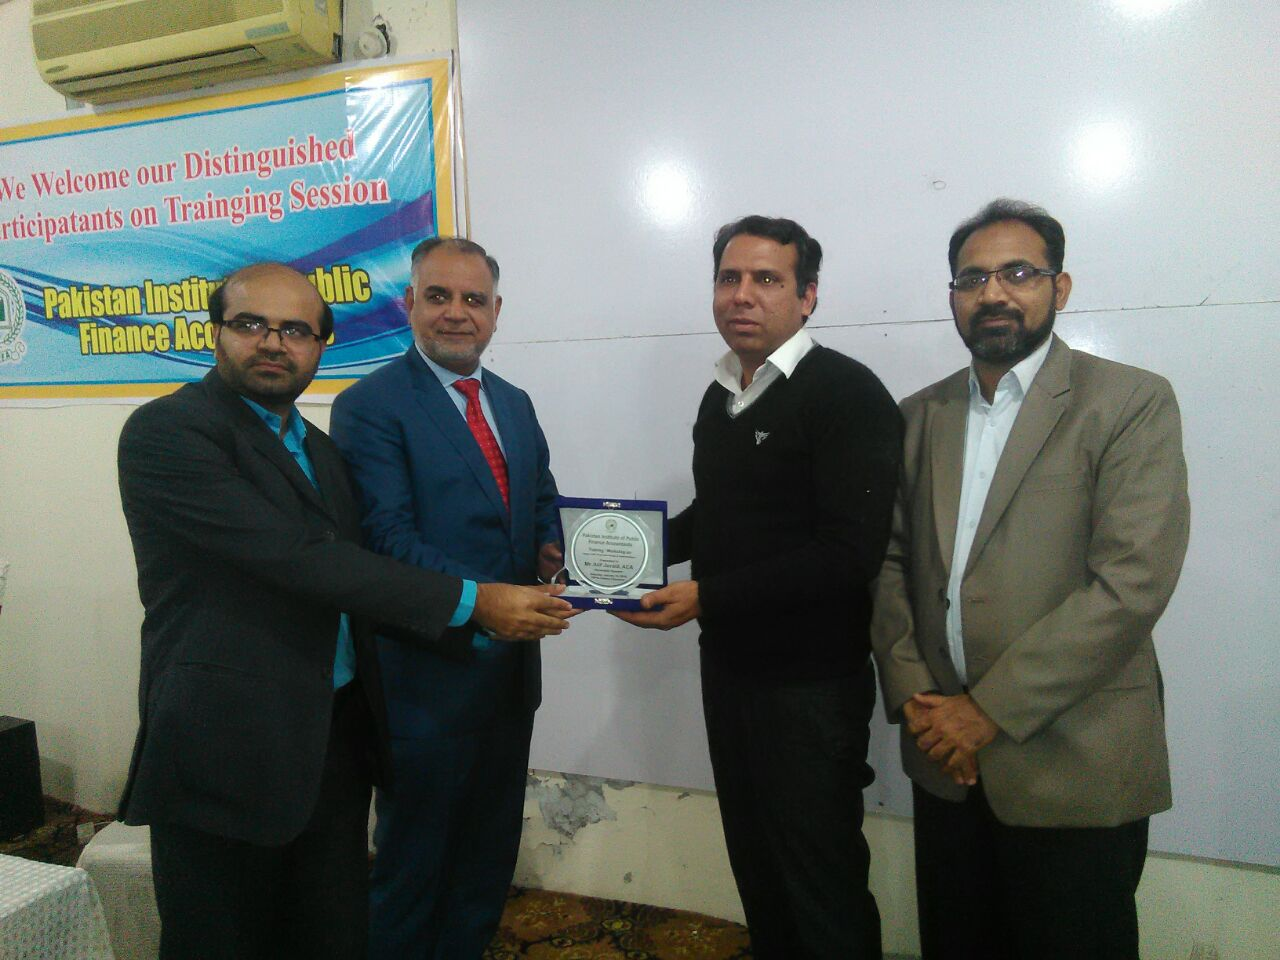 Two-Days Workshop on Oracle EBS-Financials Design & Implementation - PIPFA Faislabad